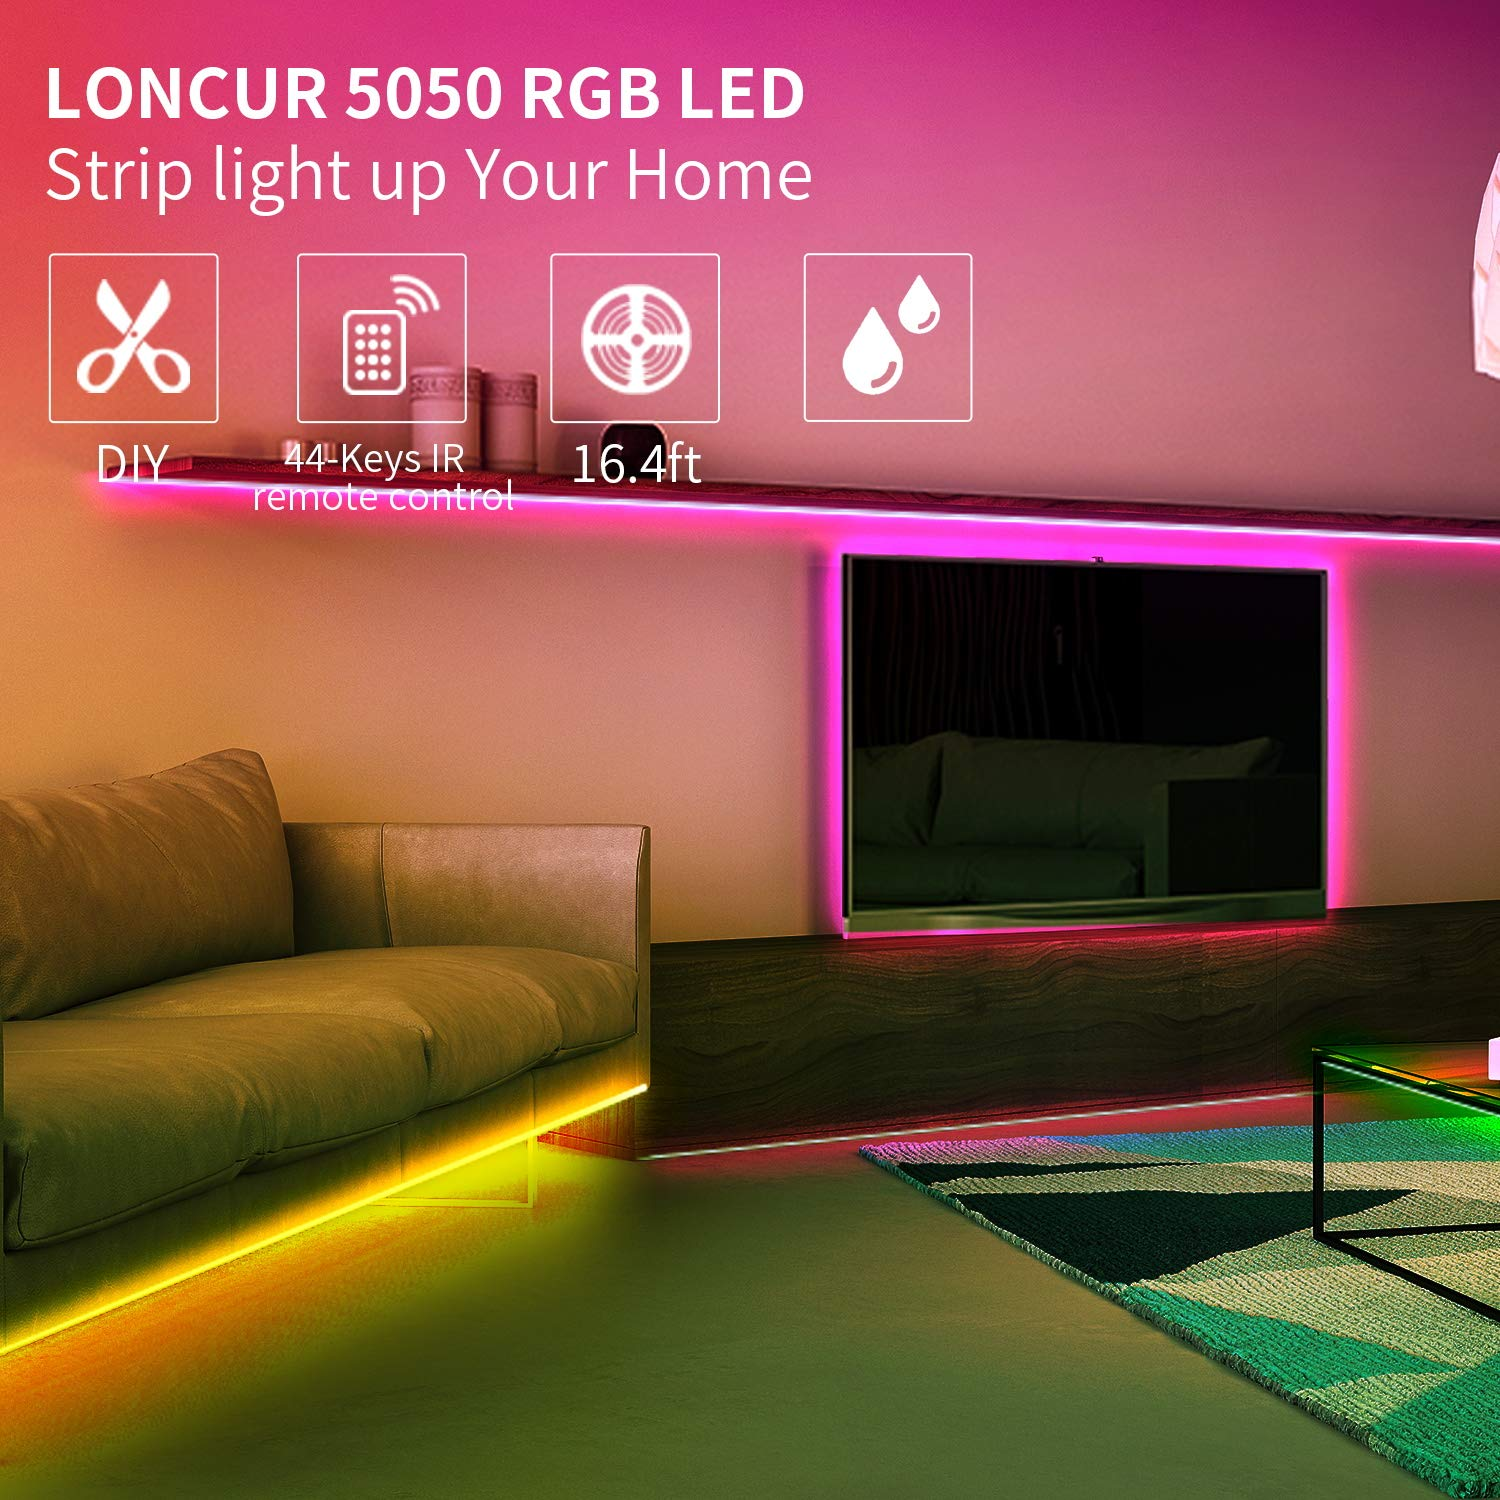 Loncur Waterproof LED Strip Lights, 16.4ft RGB SMD 5050 150LEDs,12V/2A DC, LED Rope Lighting 20 Colors Changing Full Kit with 44-Key IR Remote&Controller Box for Home Indoor& Outdoor Decoration